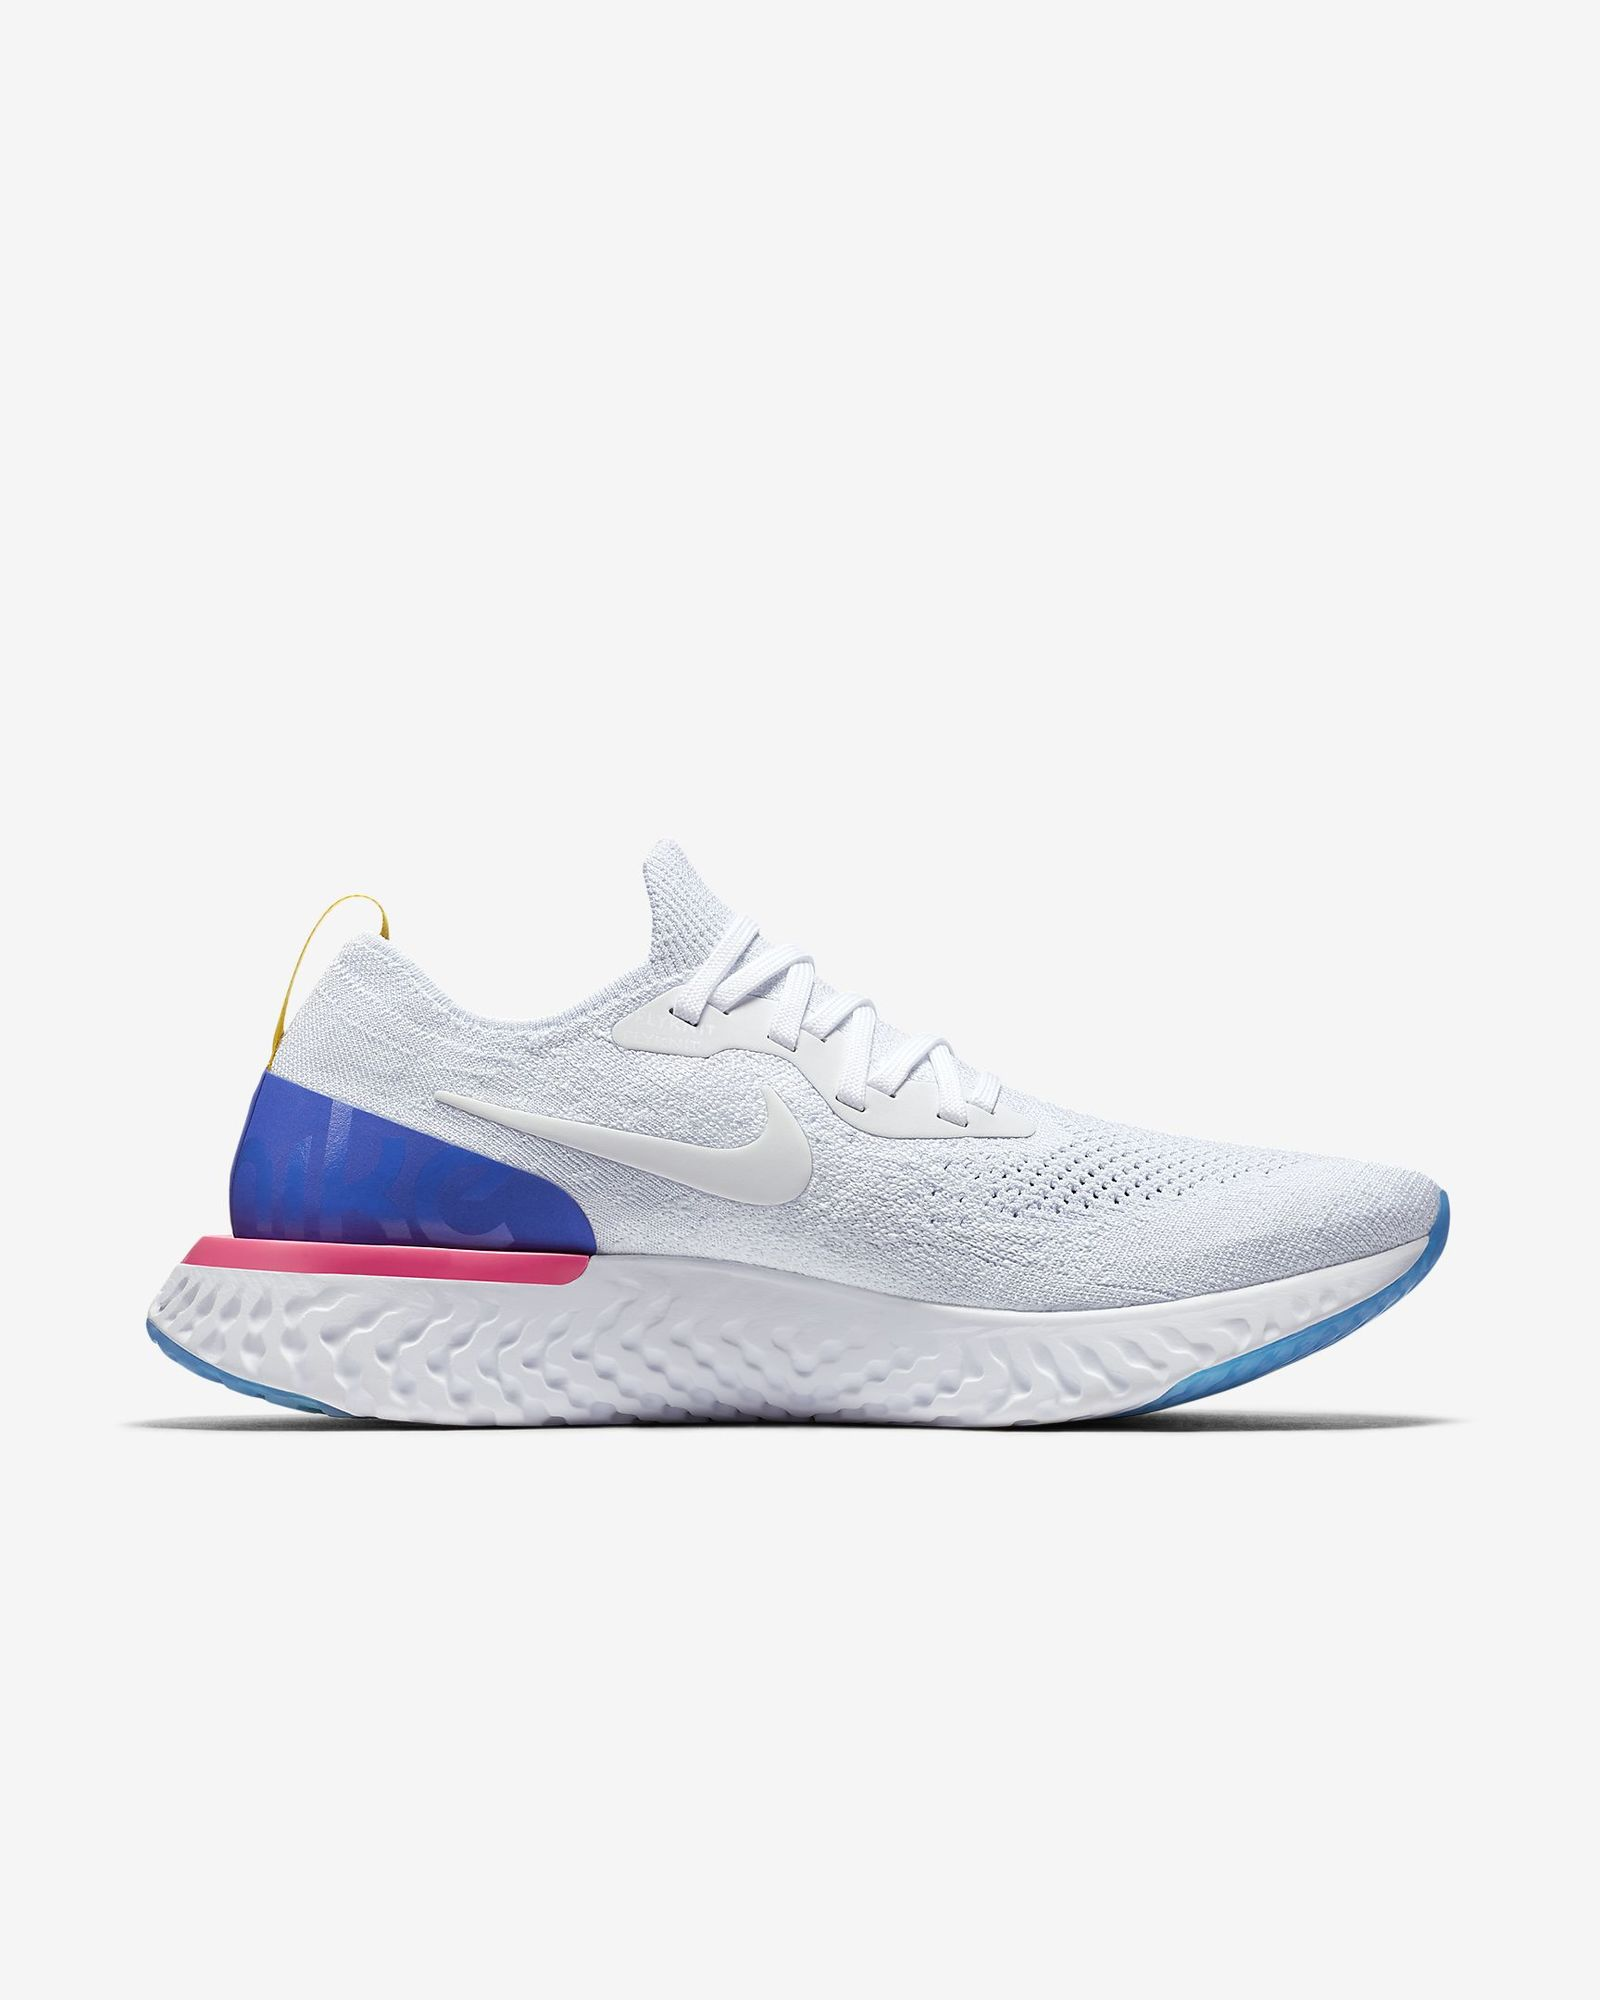 Nike Epic React Flyknit in Weiß Blau